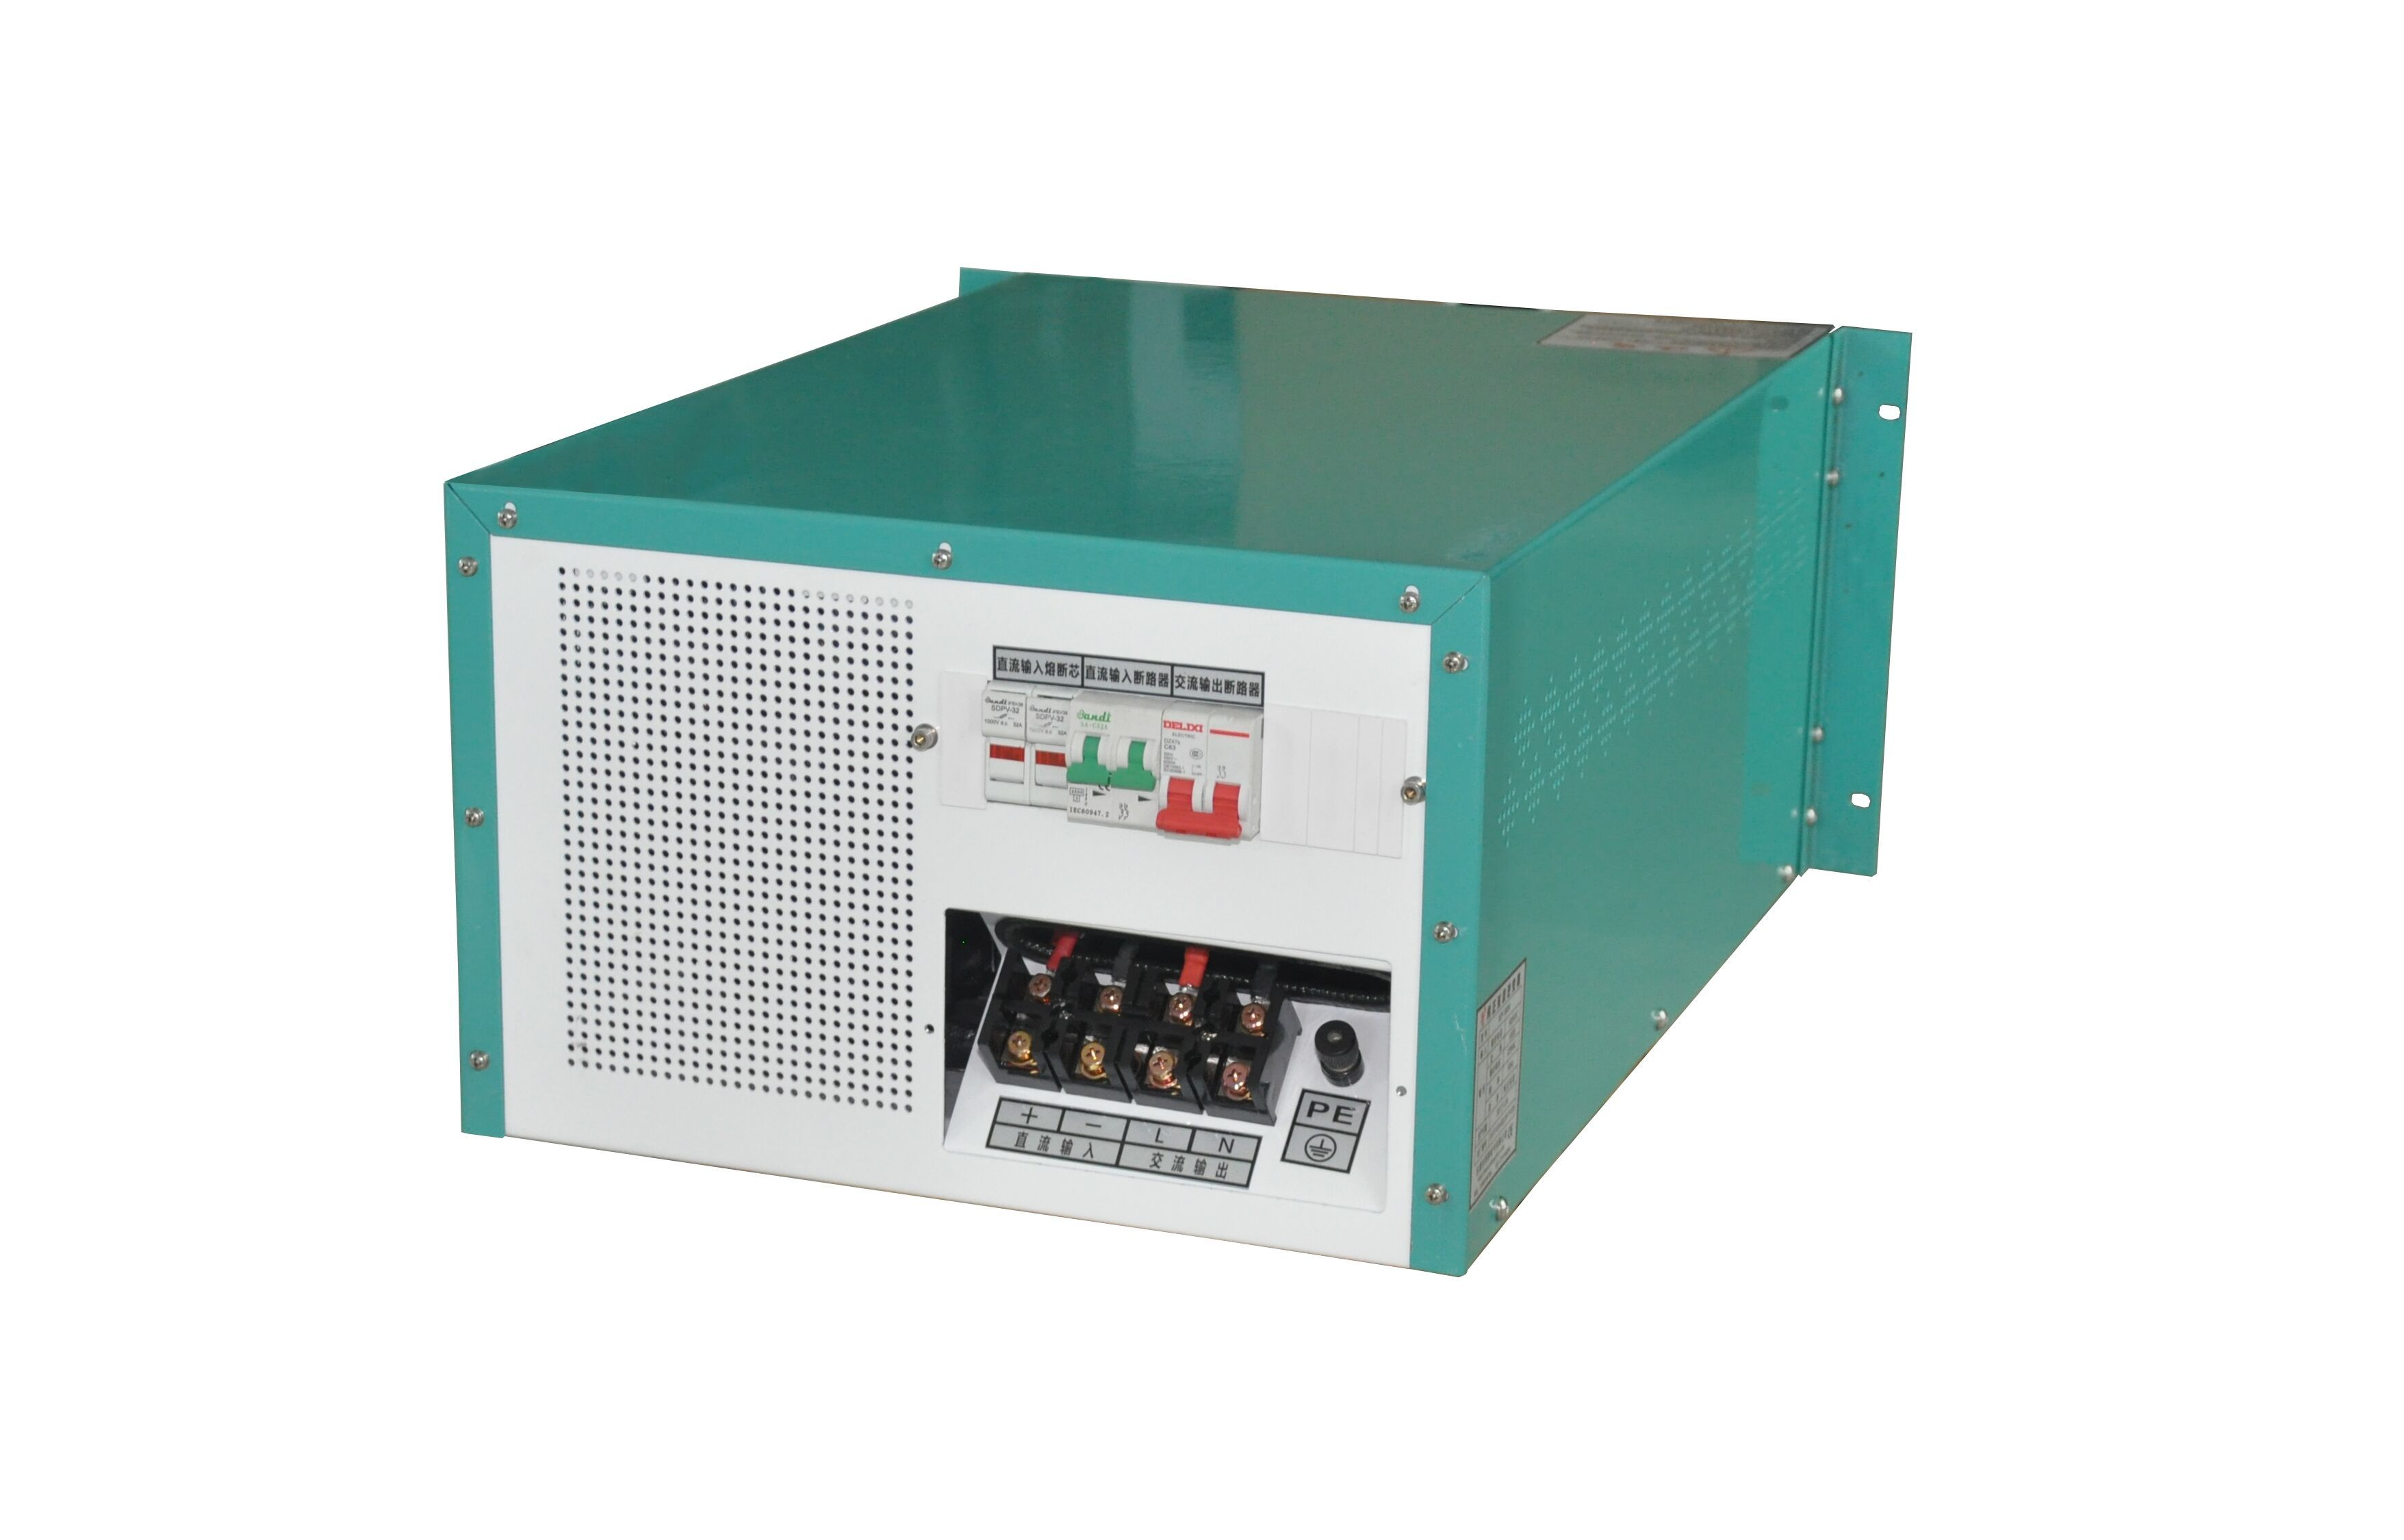 200-400VDC input off grid inverter split phase